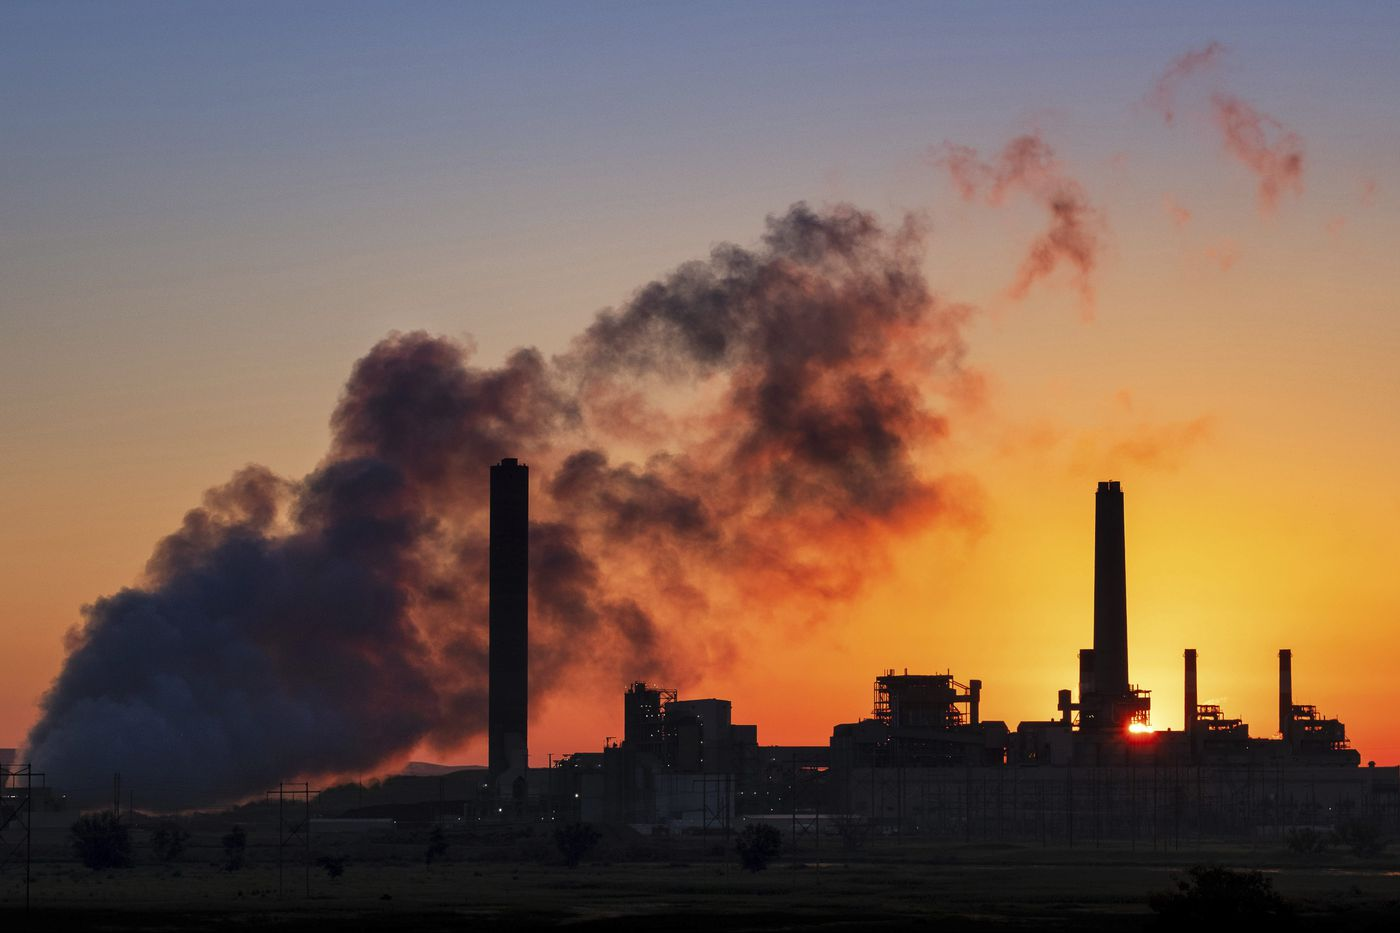 Australia to Stick with Coal Despite Dire UN Climate Warning